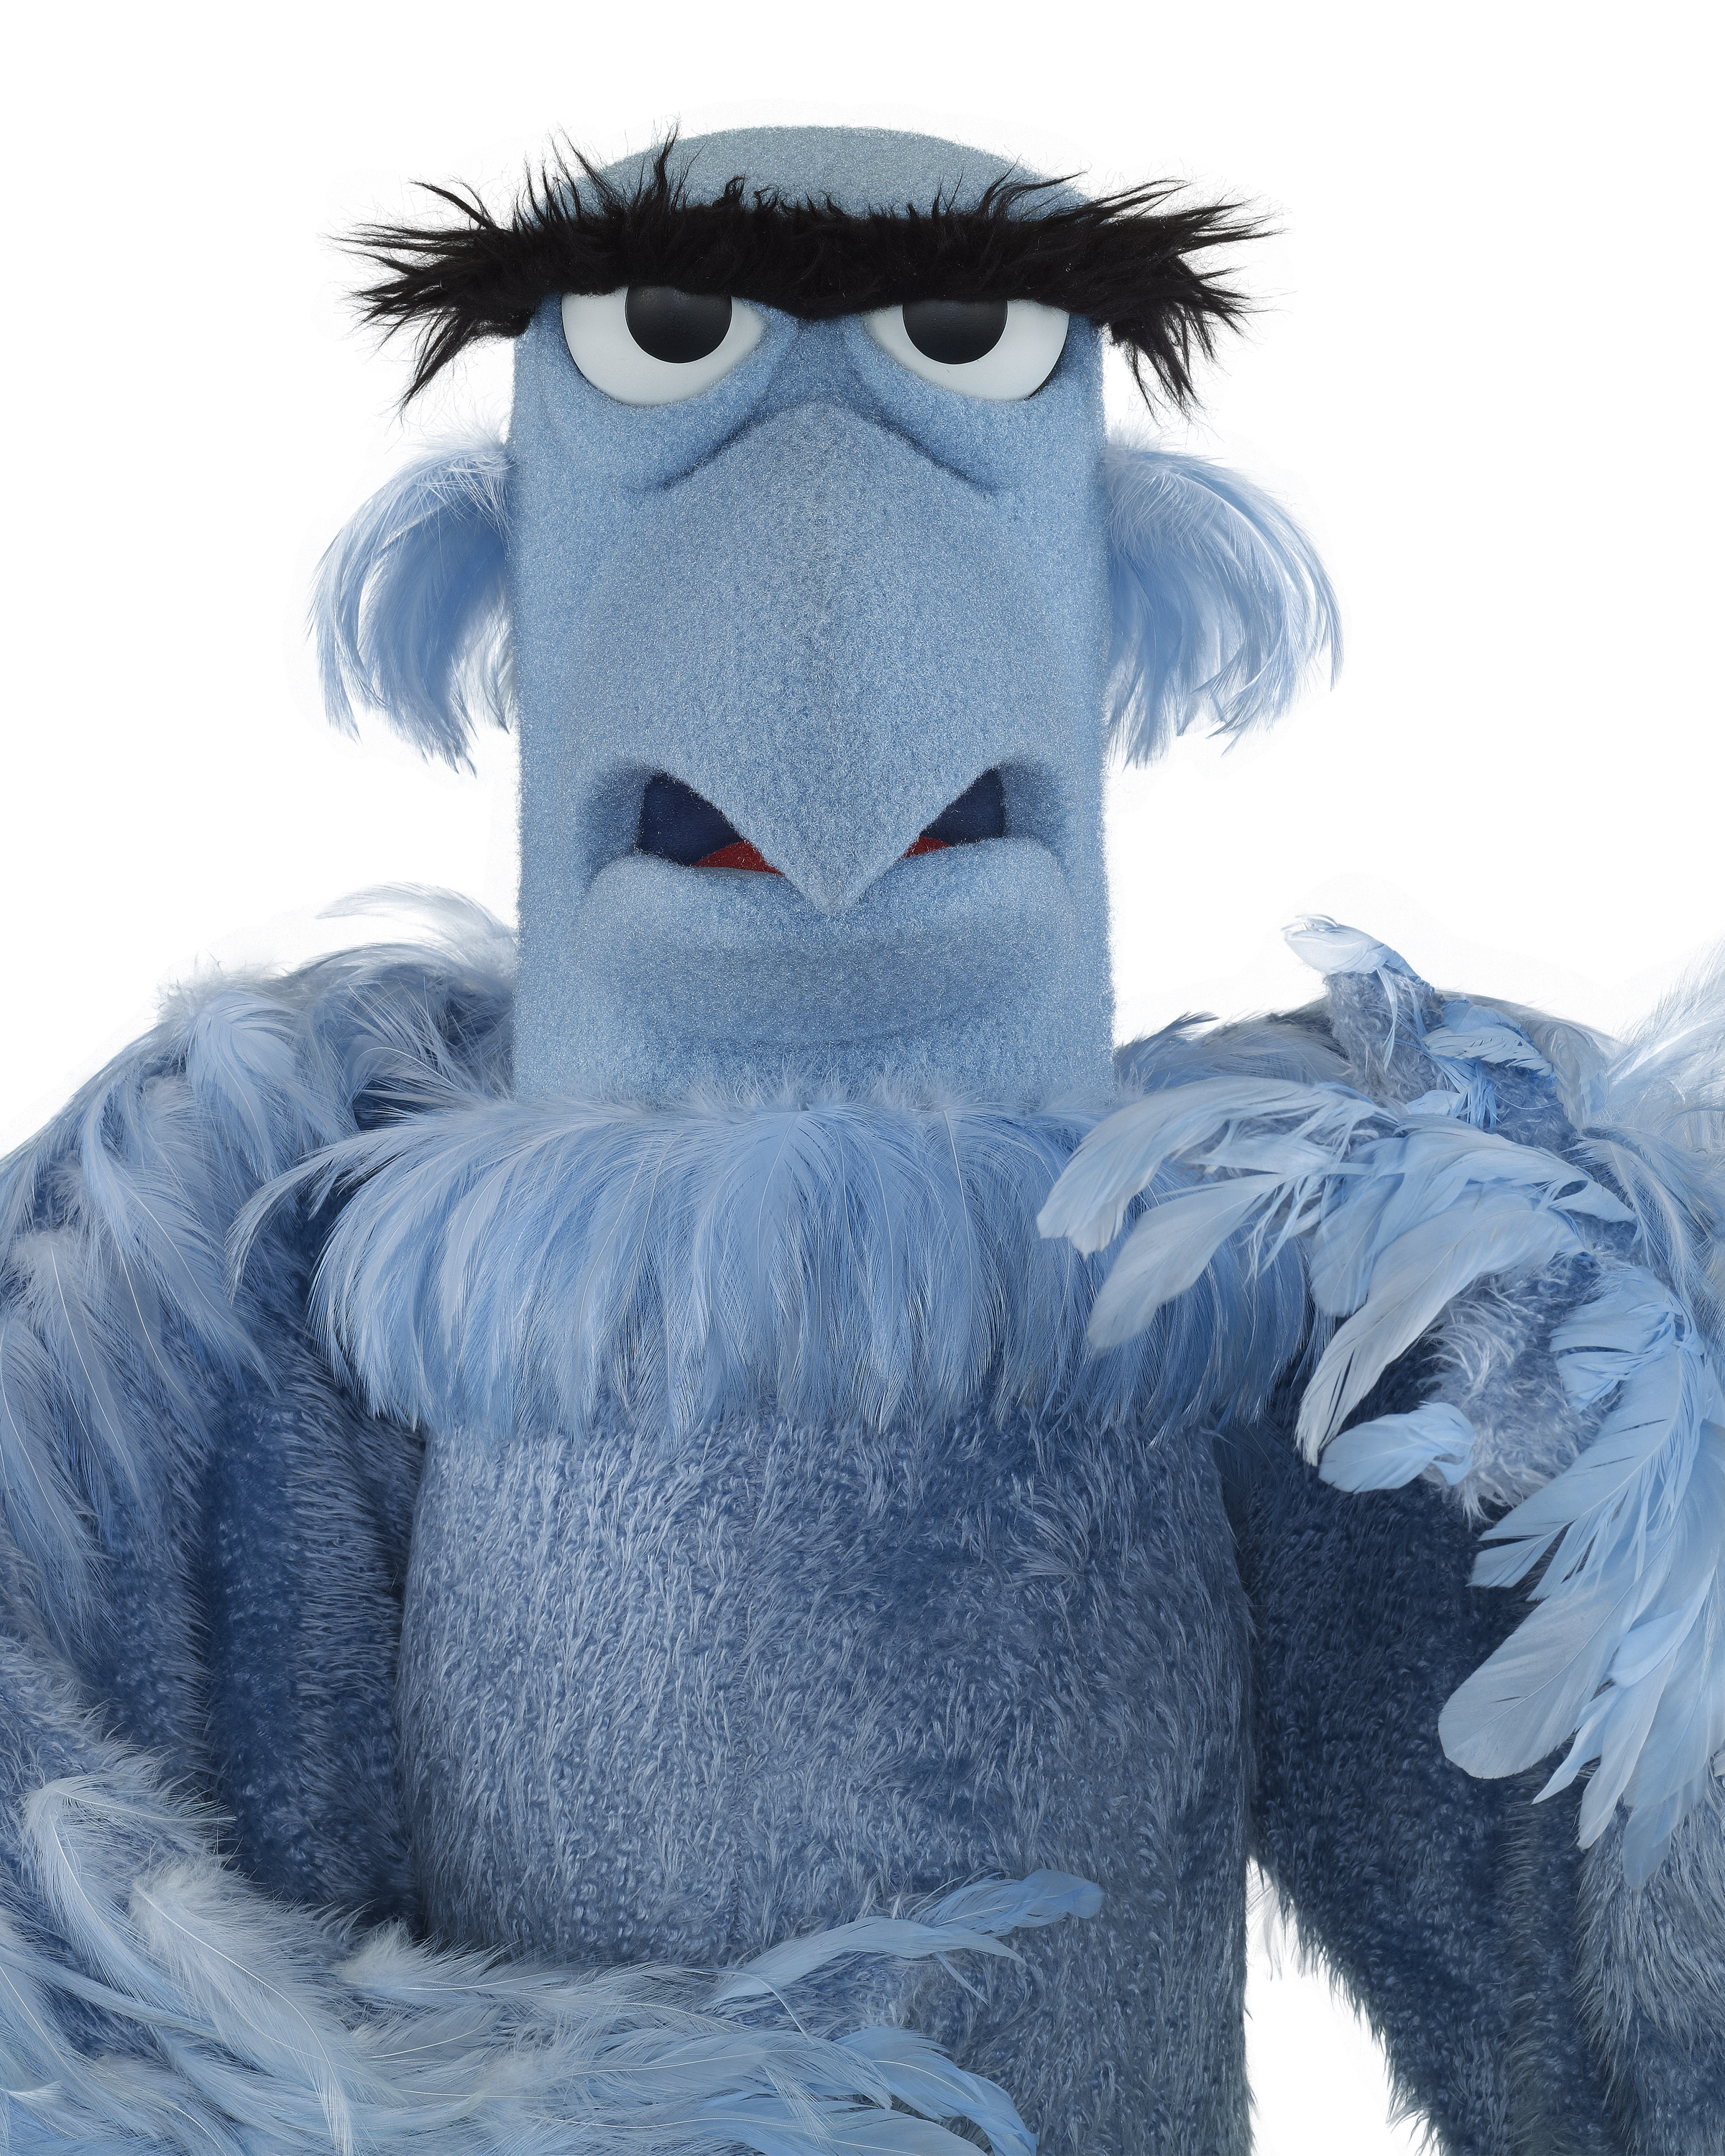 Sam the Eagle - Yes, this bird is the token nationalist in the bunch but who wouldn't want to tie him up, walk on his tail feathers with stilettos, and teach him a thing or two about democratic socialism?